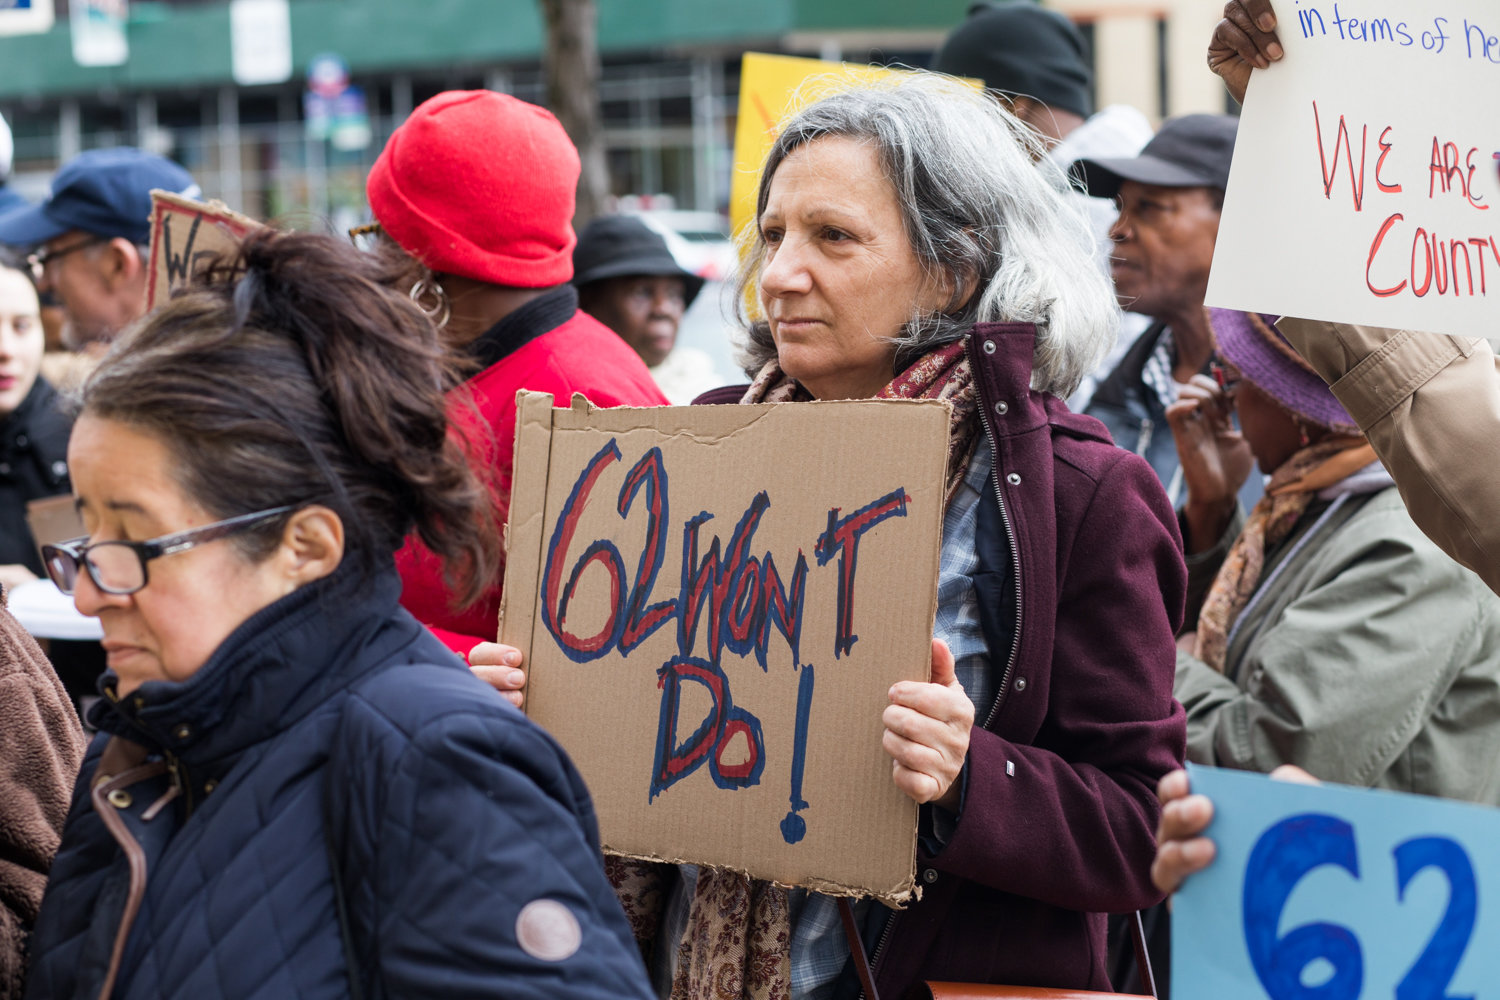 A woman holds a sign that reads '62 won't do' at a rally last year calling for improvements in health care in the Bronx, which ranked last out of the 62 counties in New York in the County Health Rankings and Roadmaps Report.